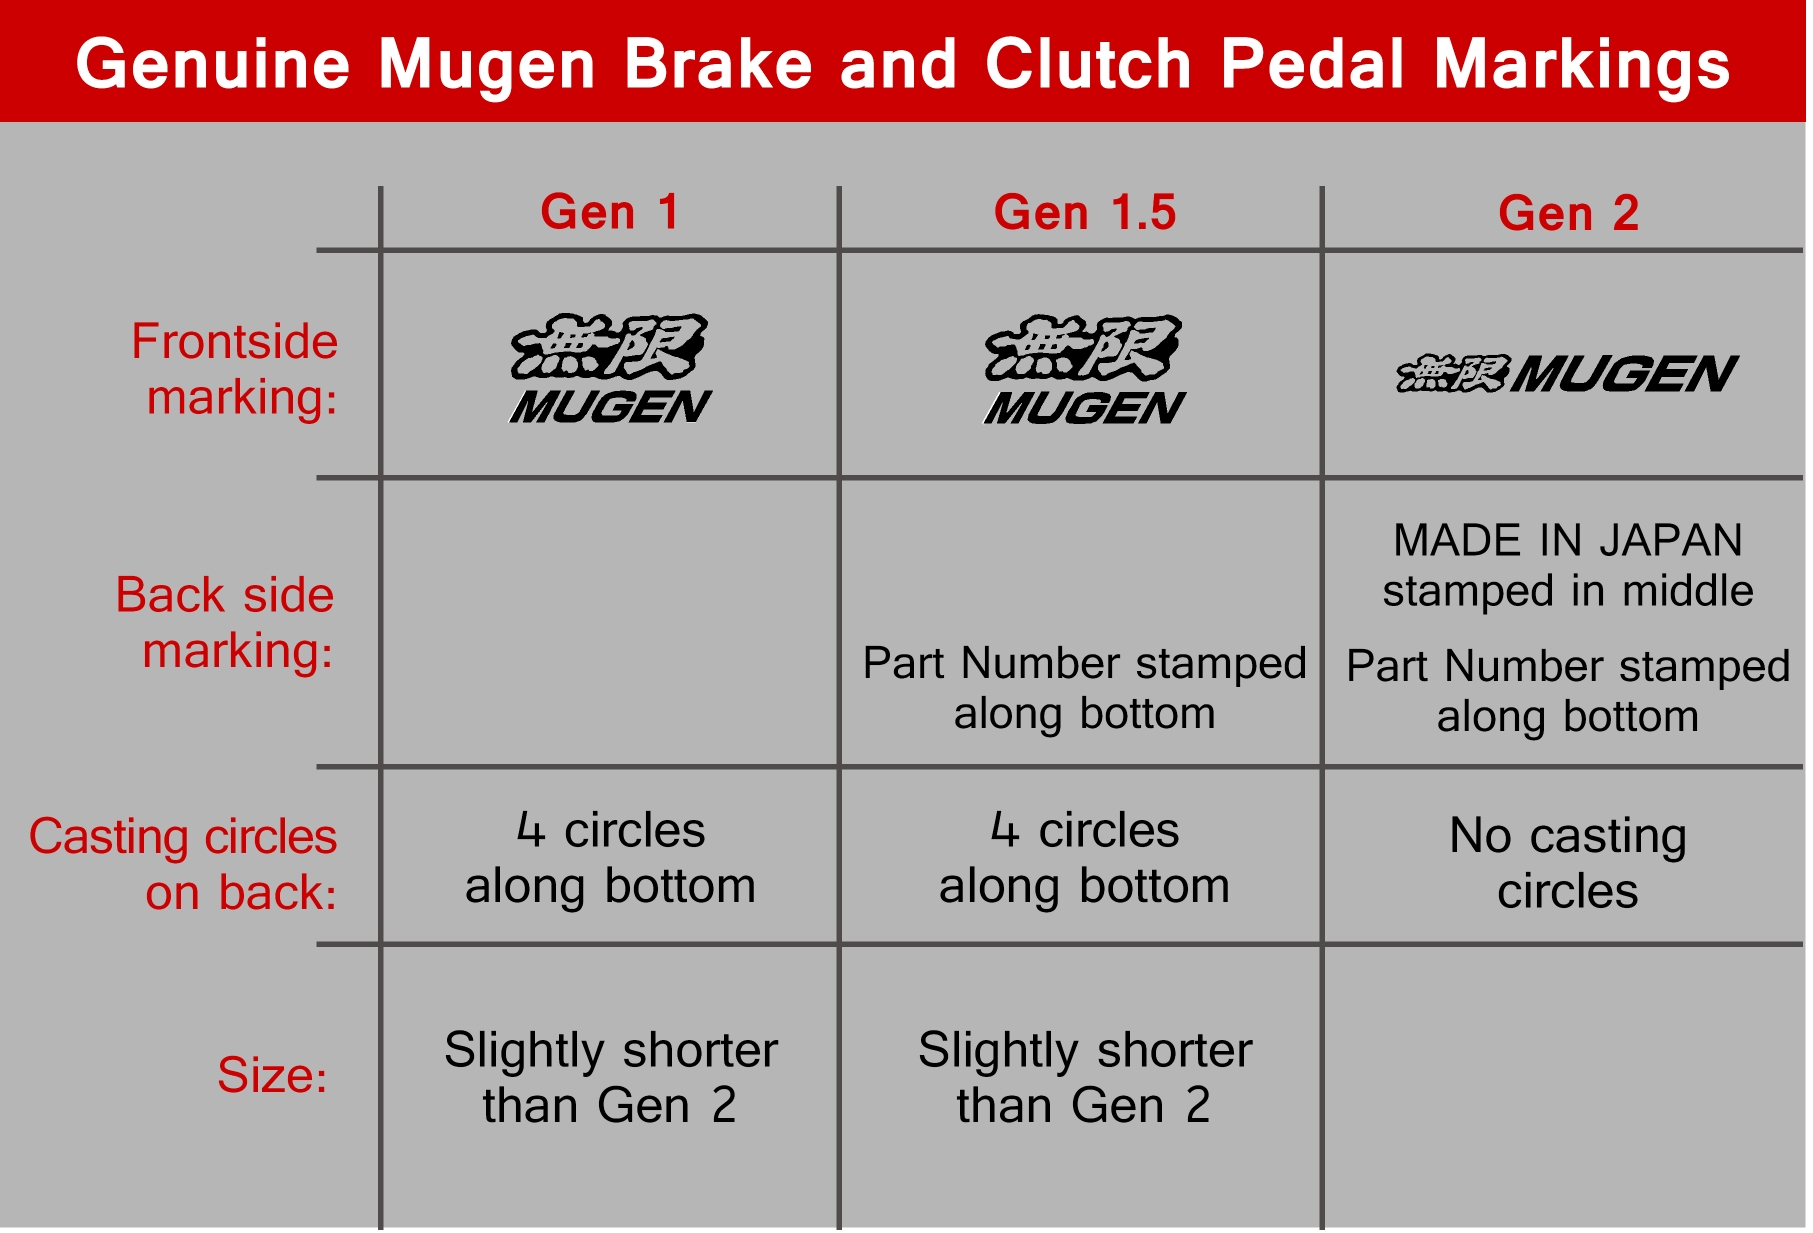 Genuine Mugen Sport Pedal Generation Comparison